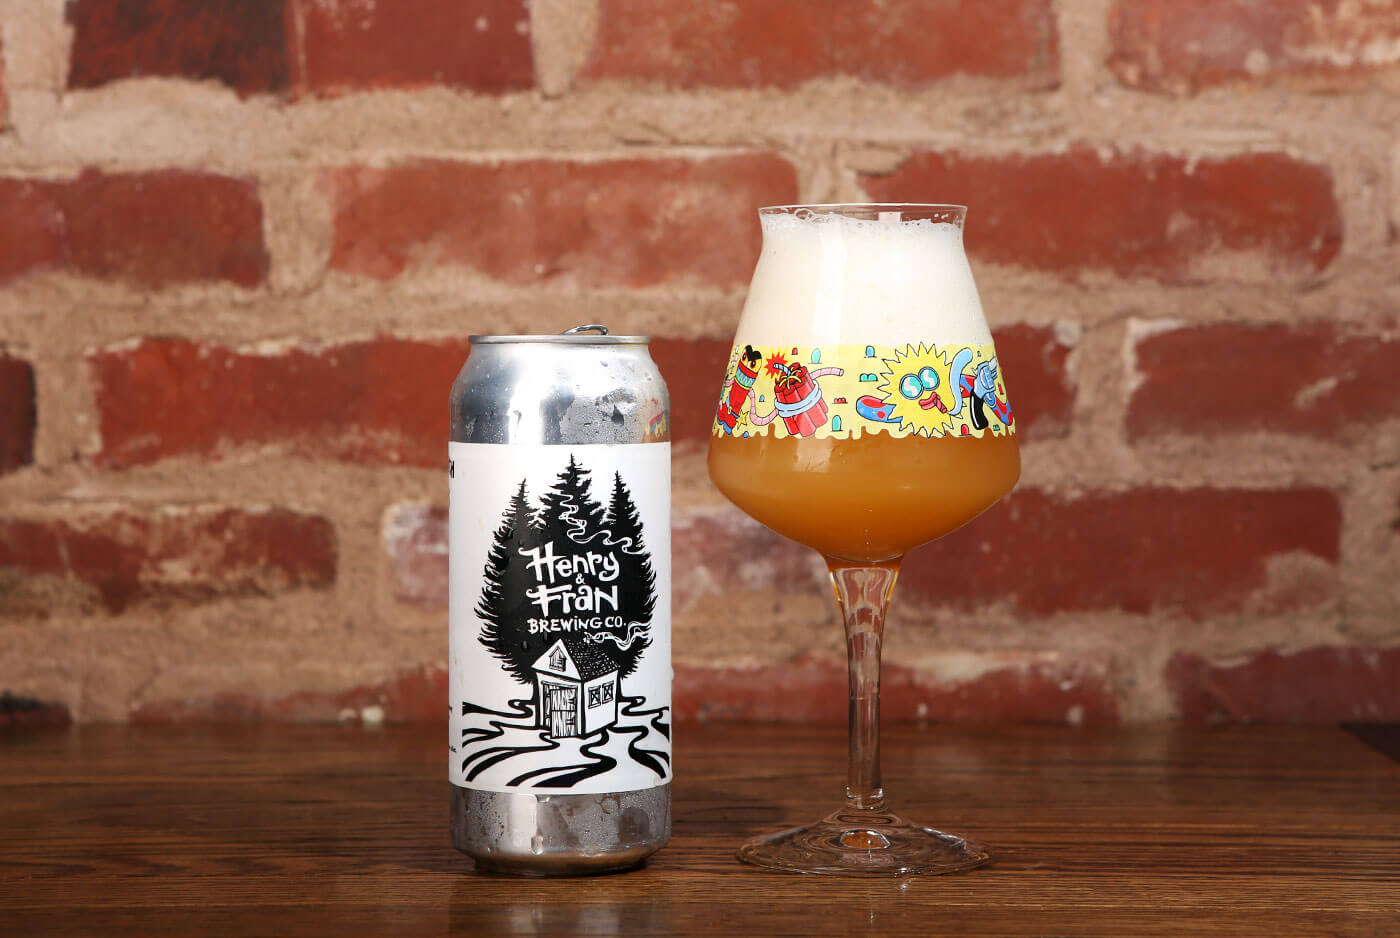 Henry & Fran Brewing Co. — Painting with Bob Ross